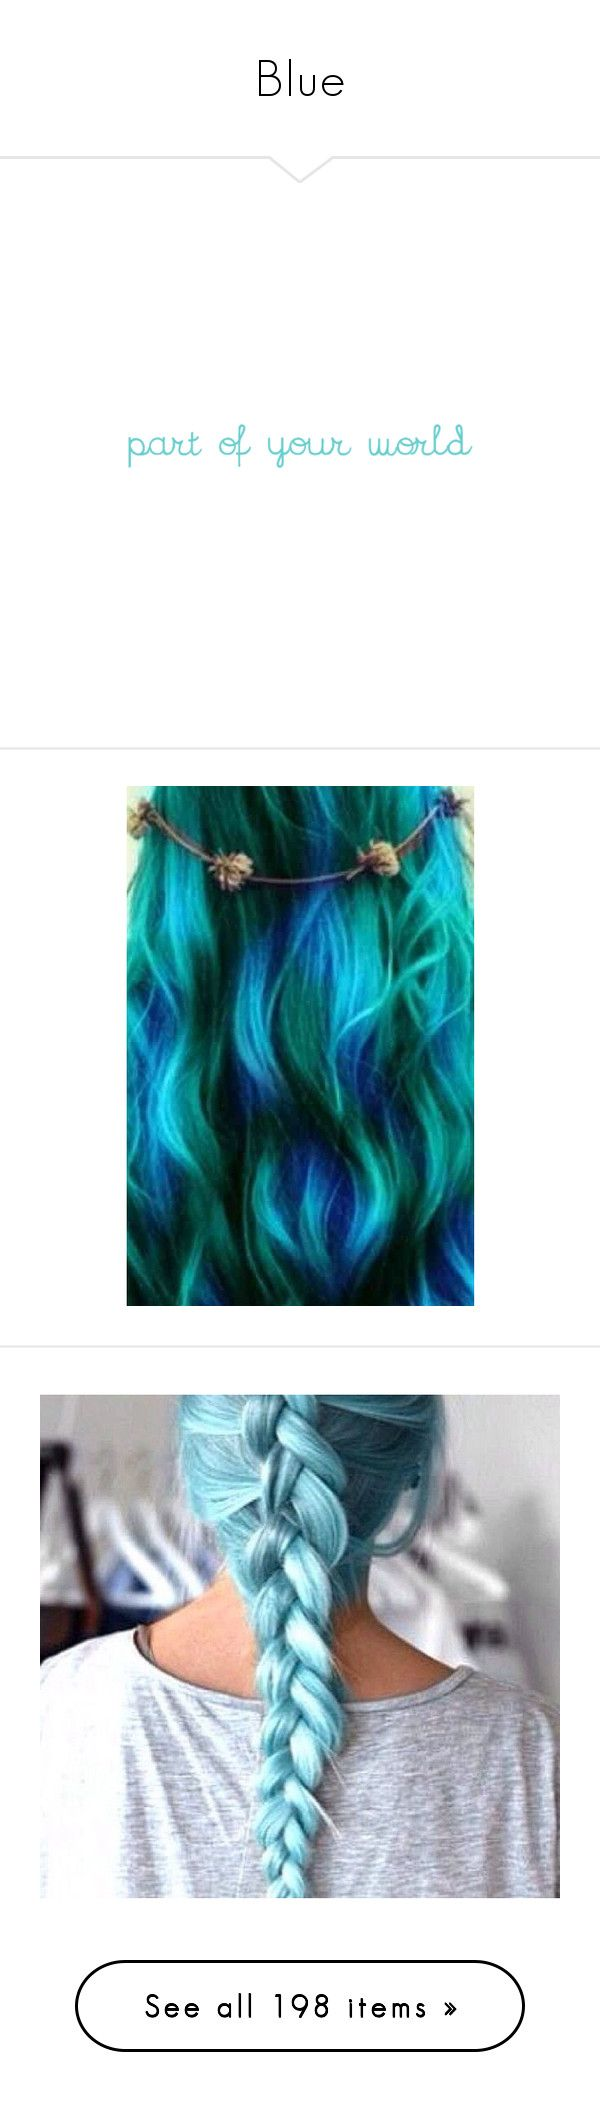 """""""Blue"""" by sara598d on Polyvore featuring hair, people, accessories, hair accessories, jewelry, rings, 24-karat gold jewelry, band rings, dolphin jewelry and teardrop ring"""